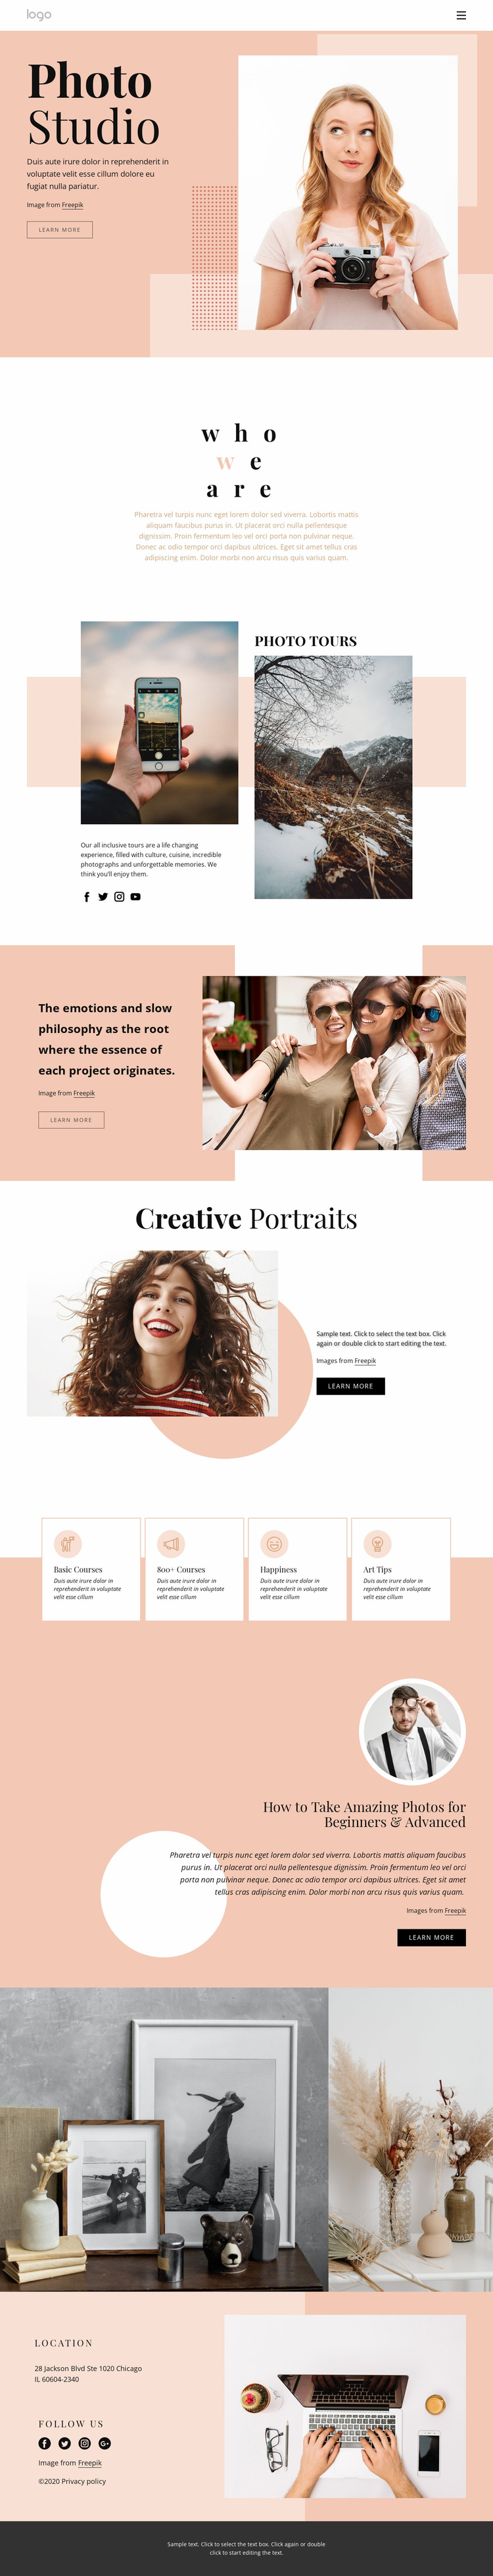 Photography courses Website Template